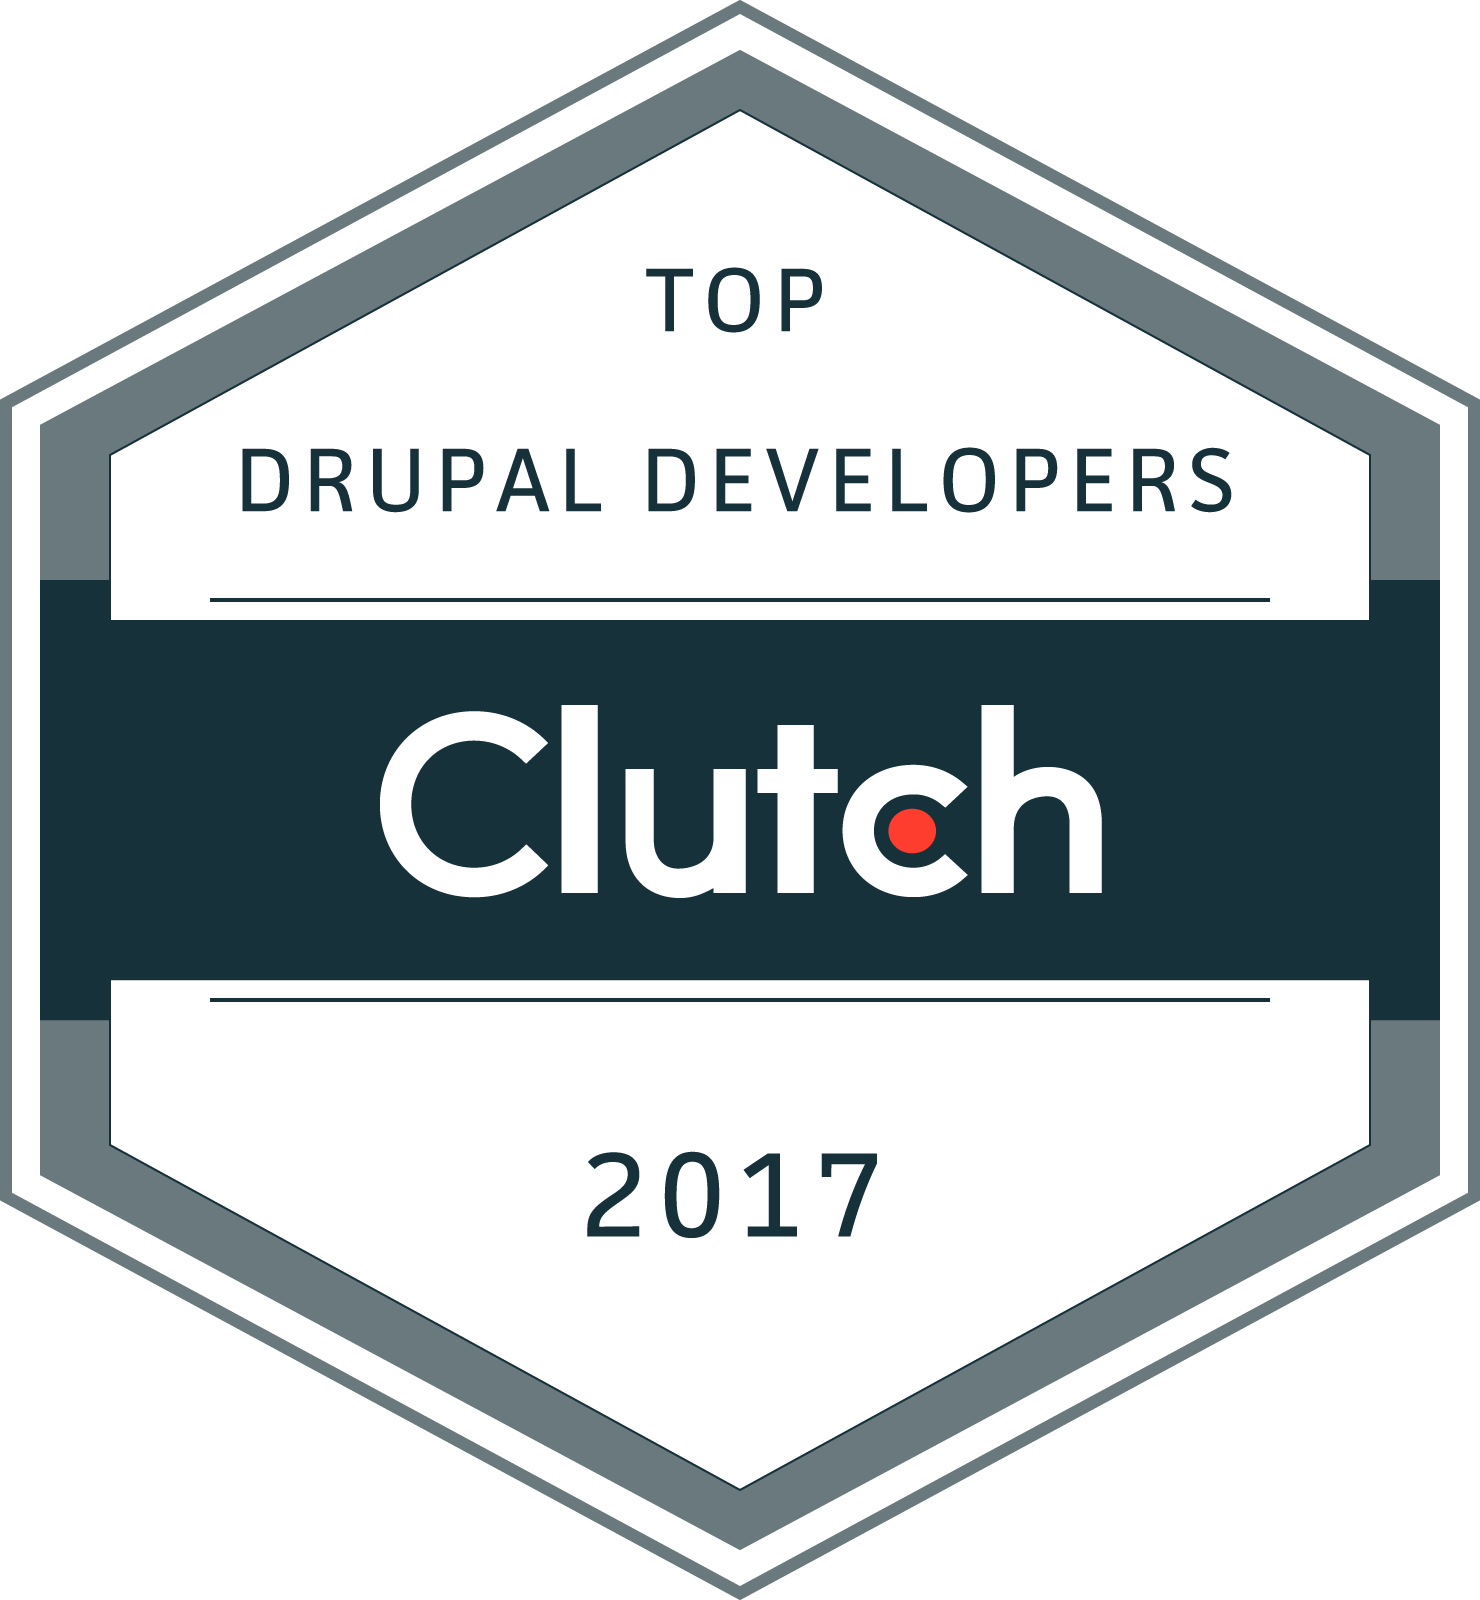 Clutch Top Drupal Developers 2015